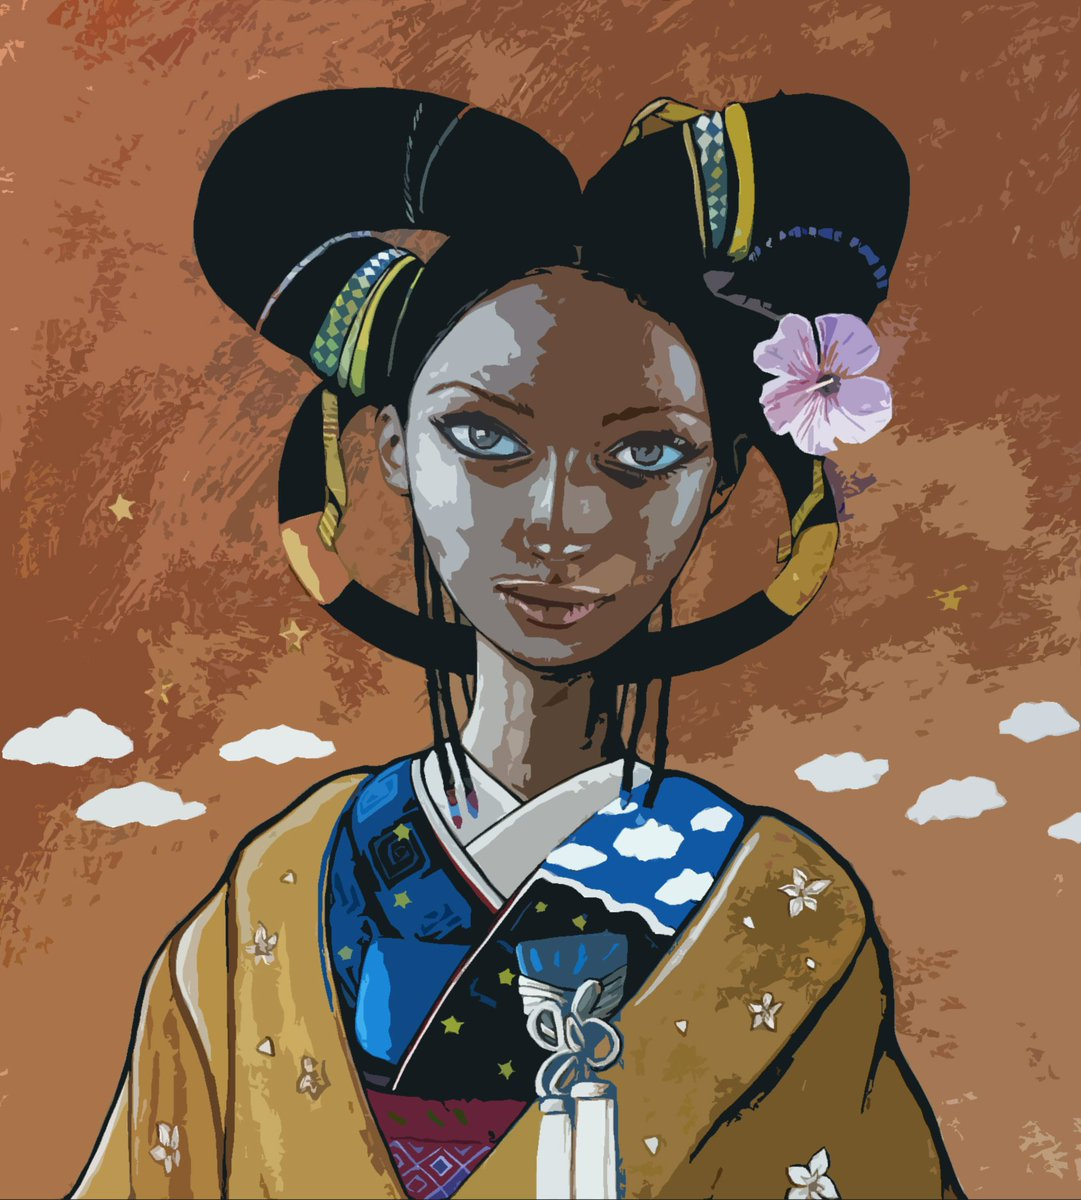 Anime version of my painting: American Geisha No. 1 #art #fineart #painting #anime #manga #geisha #kimono https://t.co/eTb61zUAFg